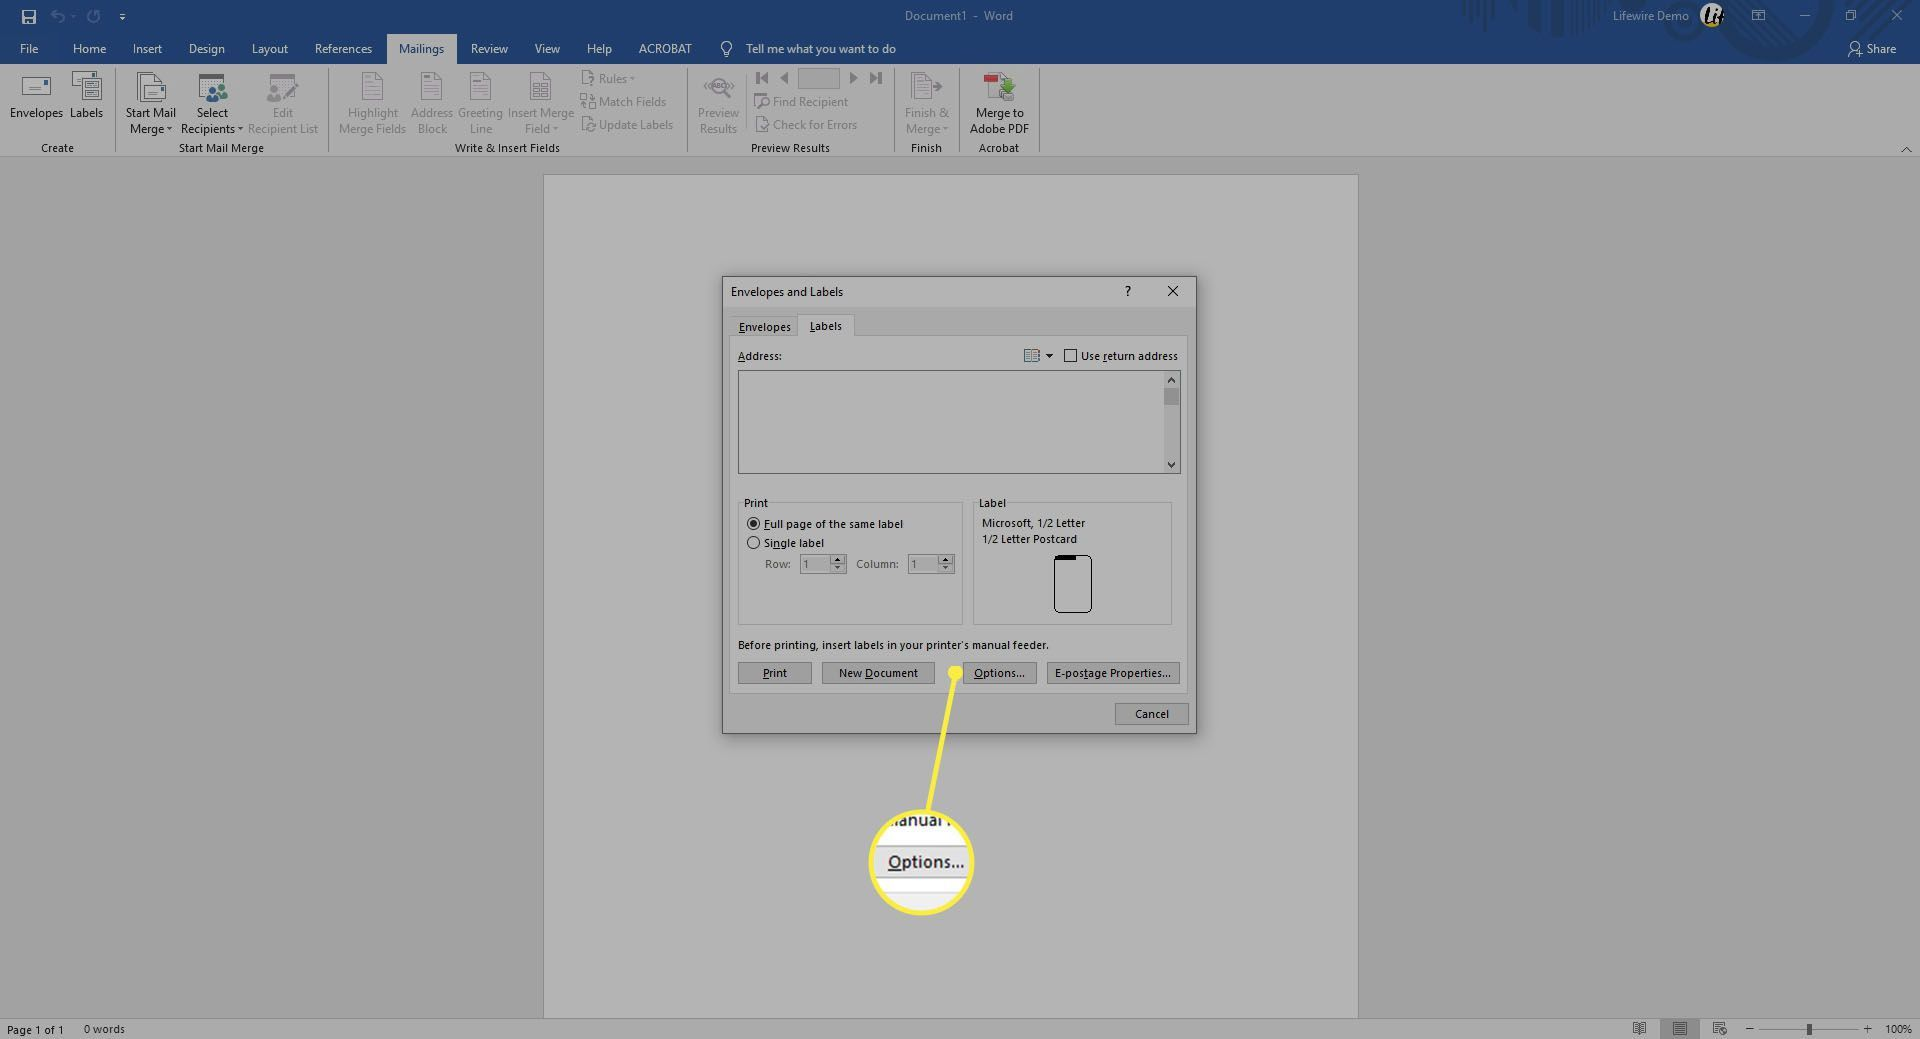 007 Fascinating Create Label In Microsoft Word Design  How To Tab 2010 365 File FolderFull